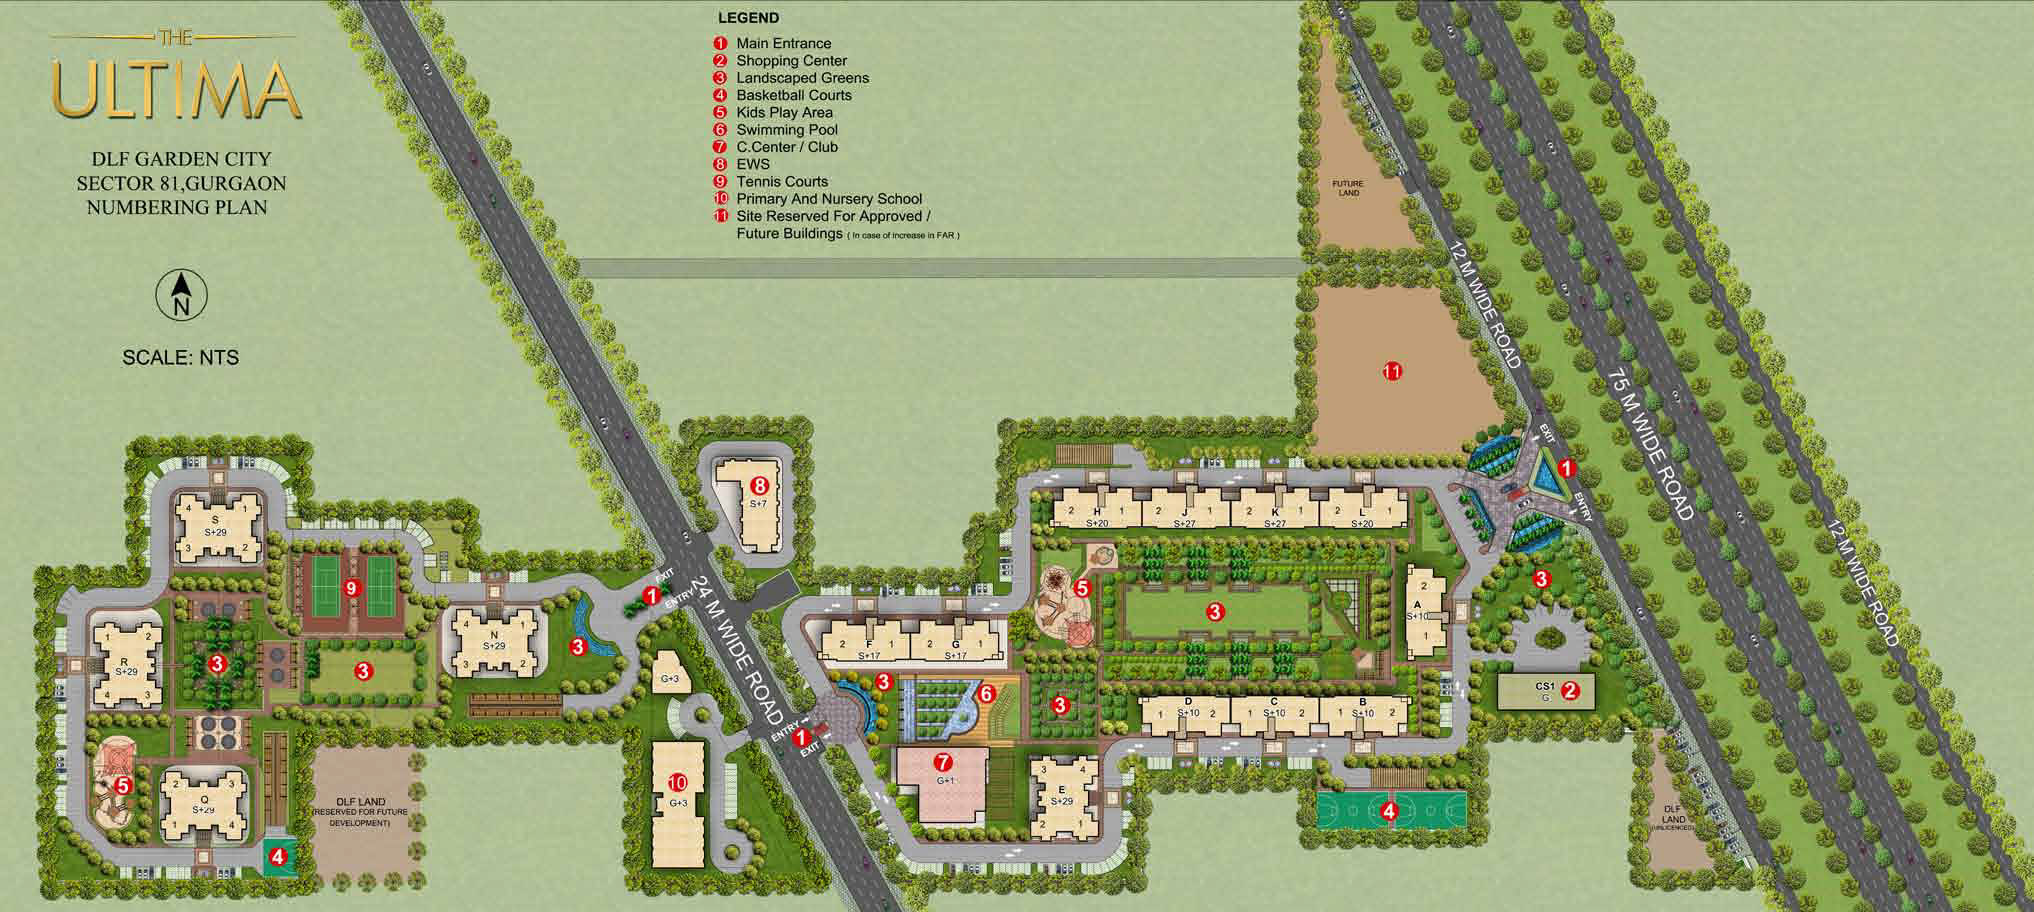 Master Plan of DLF The Ultima Gurgaon